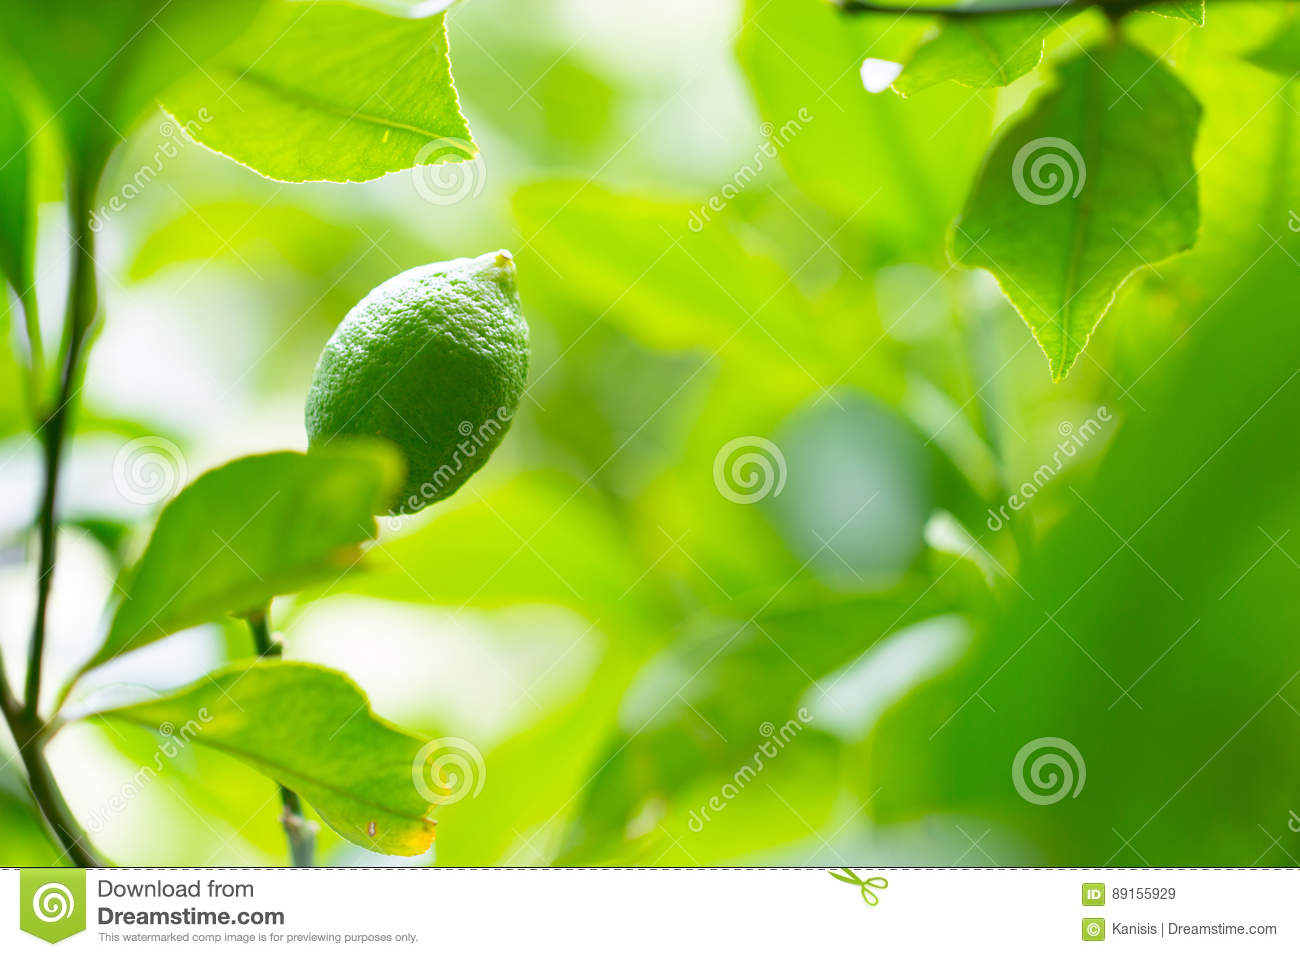 Healthy lime, lemon, citrus on a beautiful green tree branch full of leaves and bright sunlight as